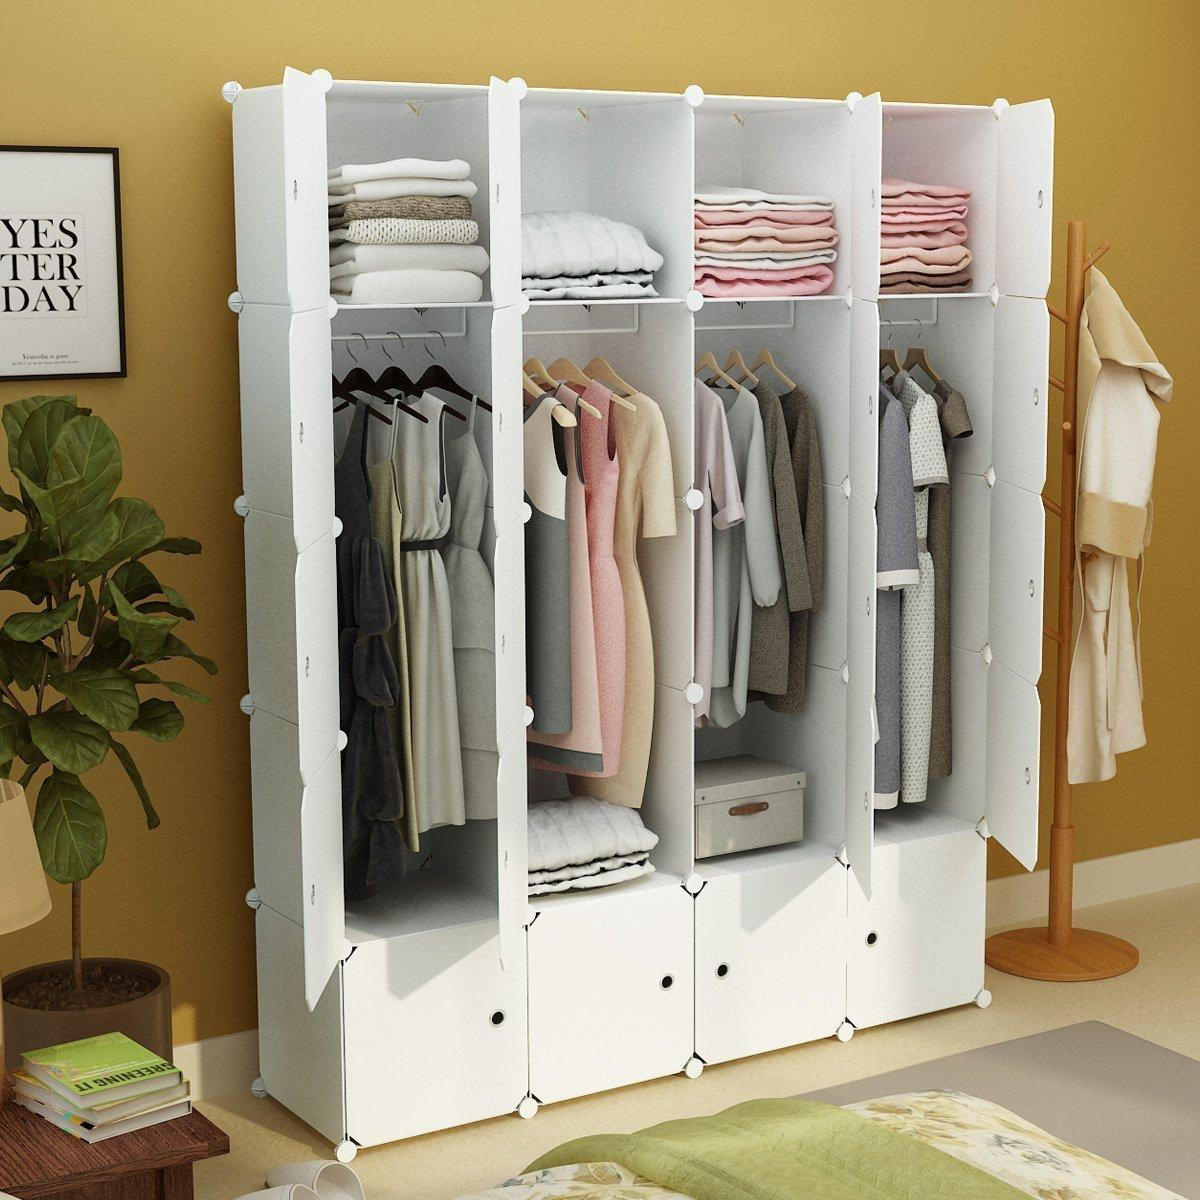 diy portable wardrobe clothes closet modular storage organizer space saving armoire deeper cubes. Black Bedroom Furniture Sets. Home Design Ideas